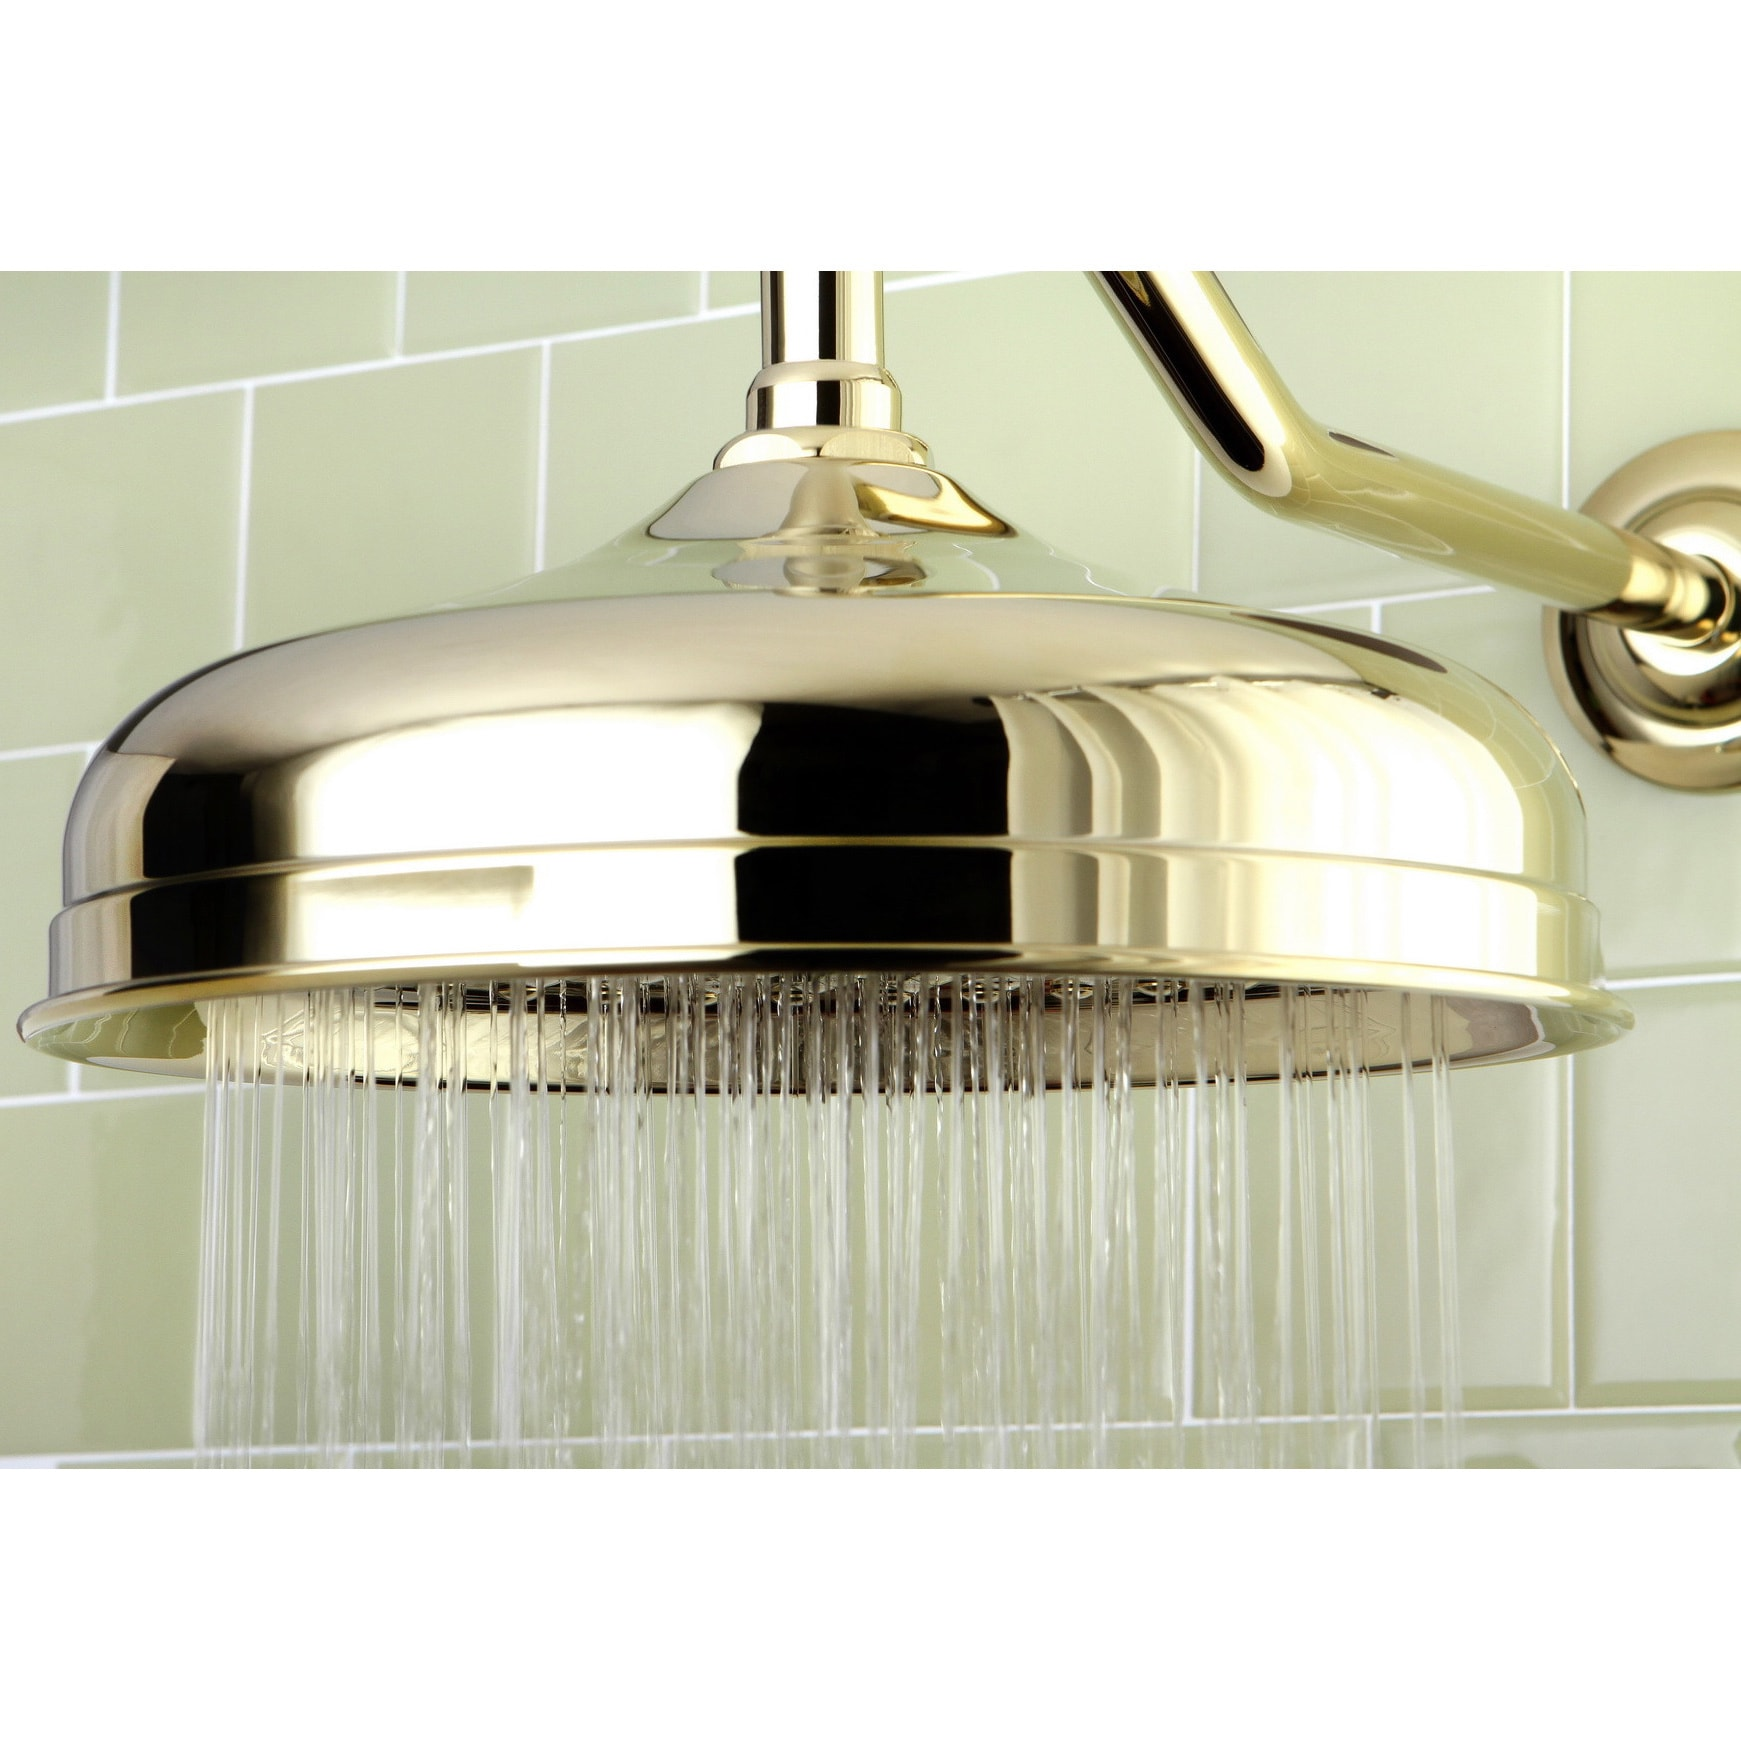 Shop Victorian Polished Brass 10 Inch Raindrop Showerhead   Free Shipping  Today   Overstock.com   8650096